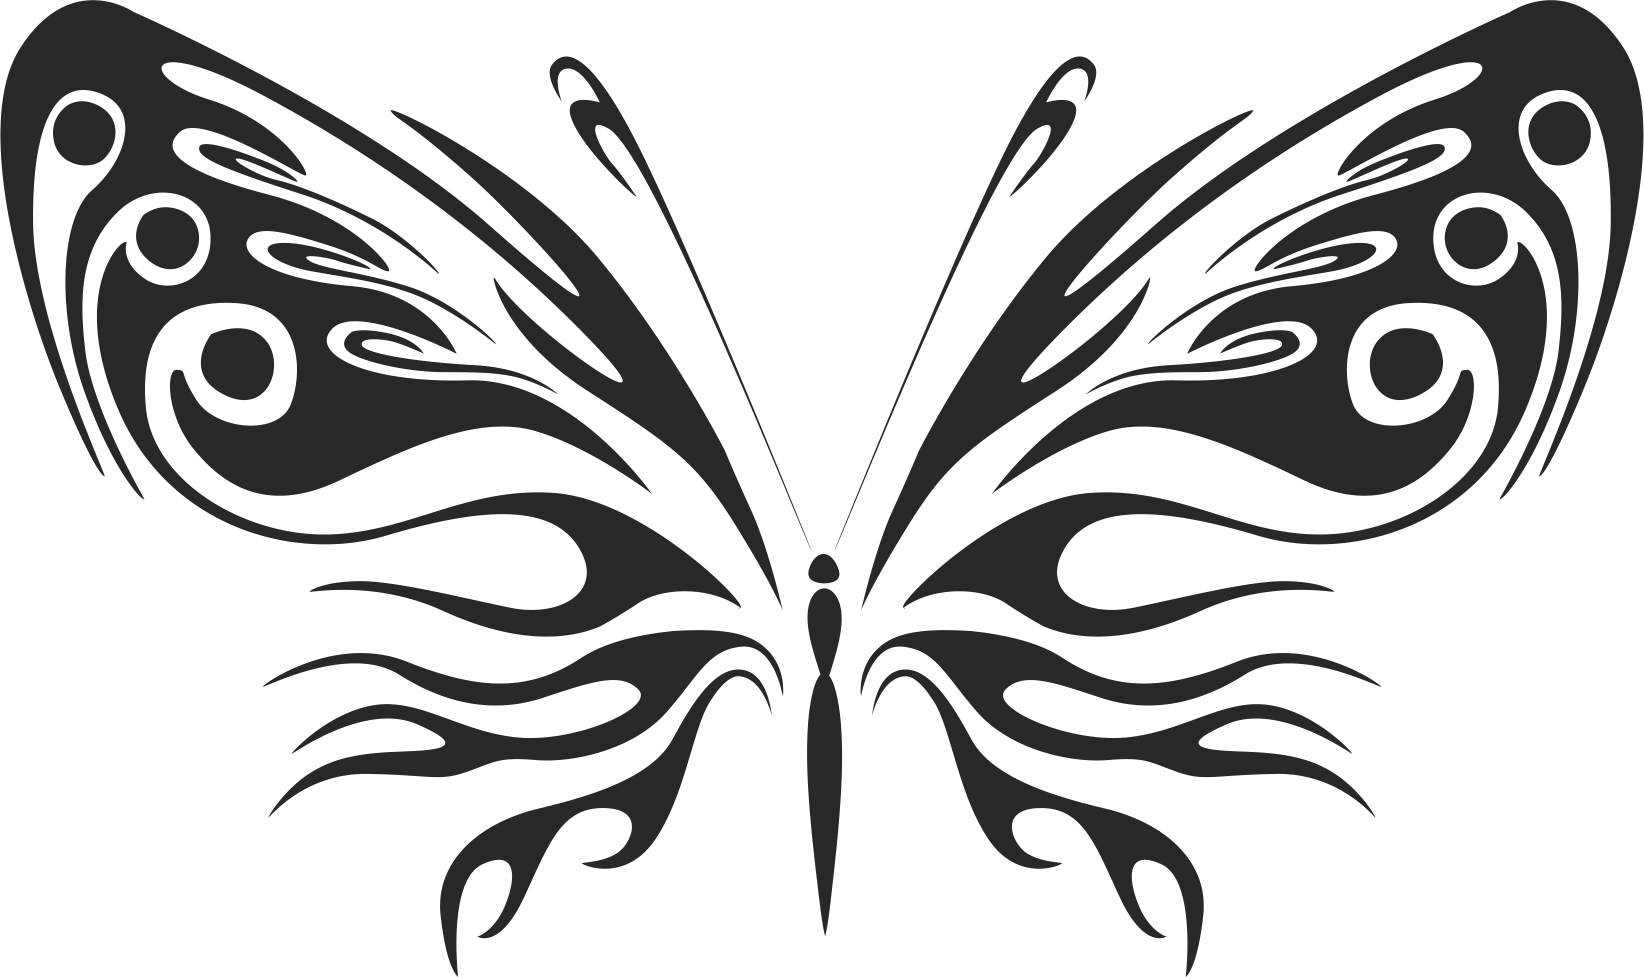 3d butterfly wall sticker black Free Vector Coreldraw cdr